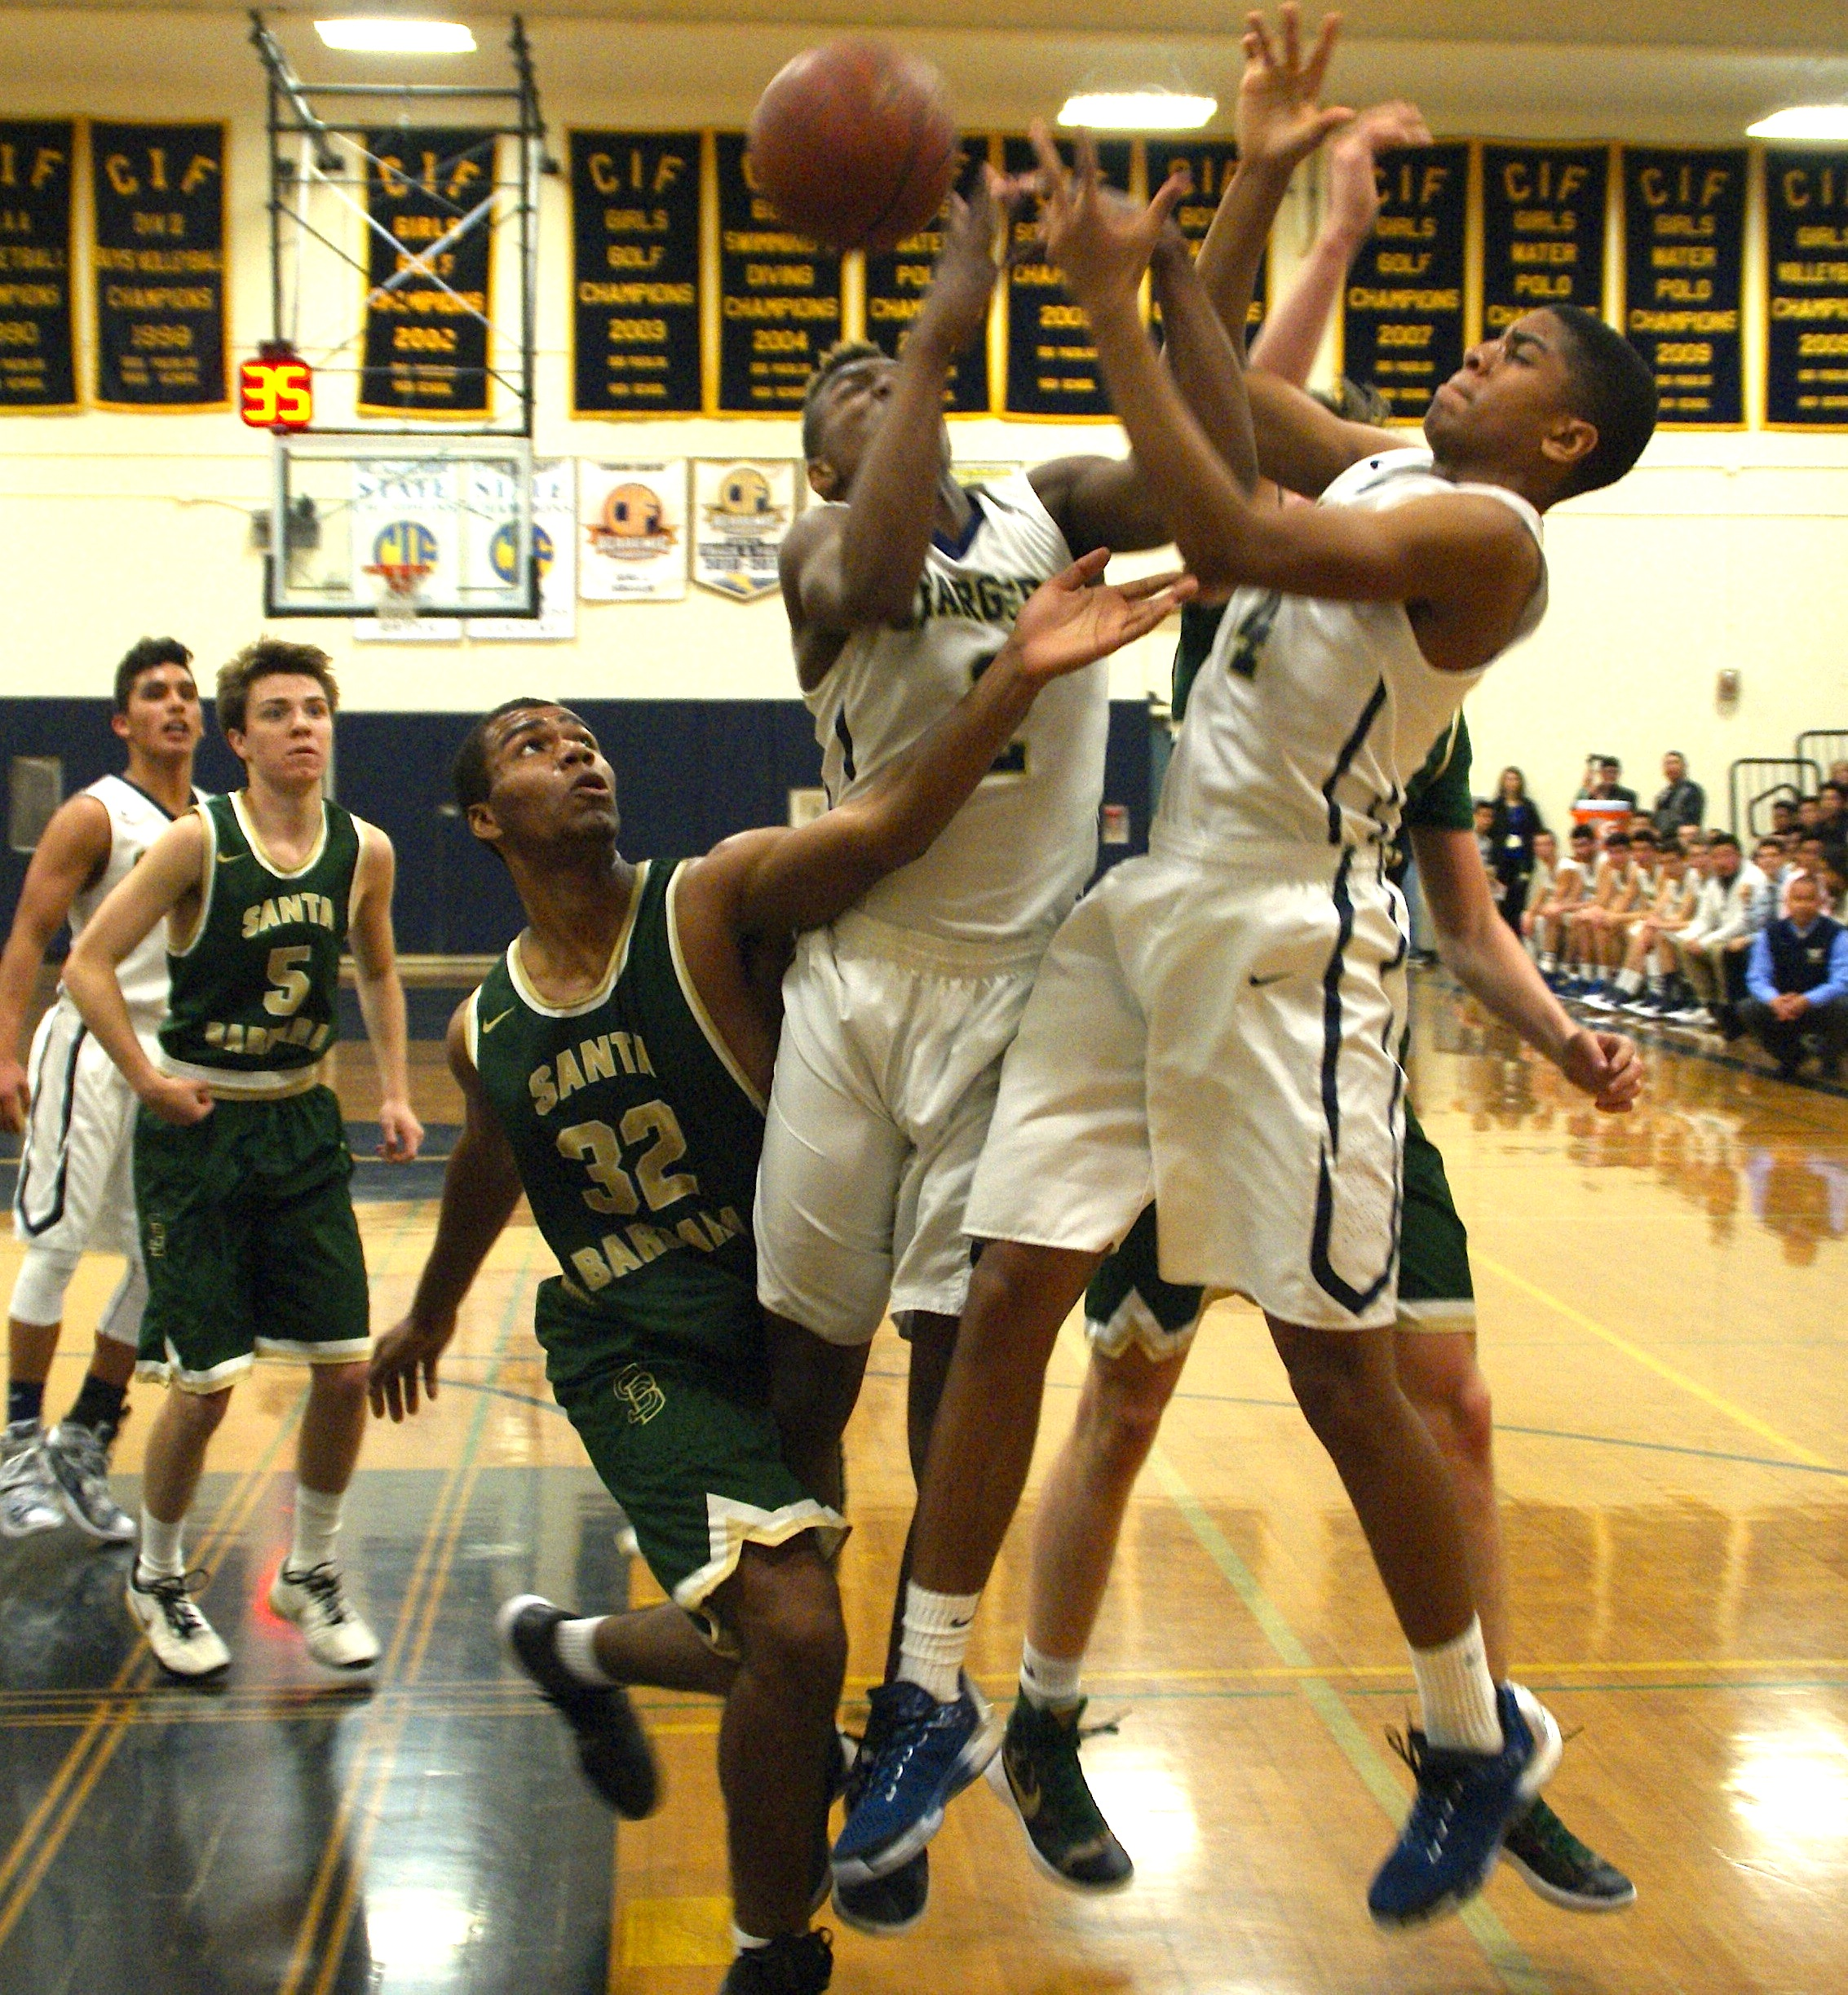 Santa Barbara's Ben Clay waits for the ball to drop into his hand after Marcellous Gossett and Cyrus Wallace of Dos Pueblos fail to come up with a rebound.